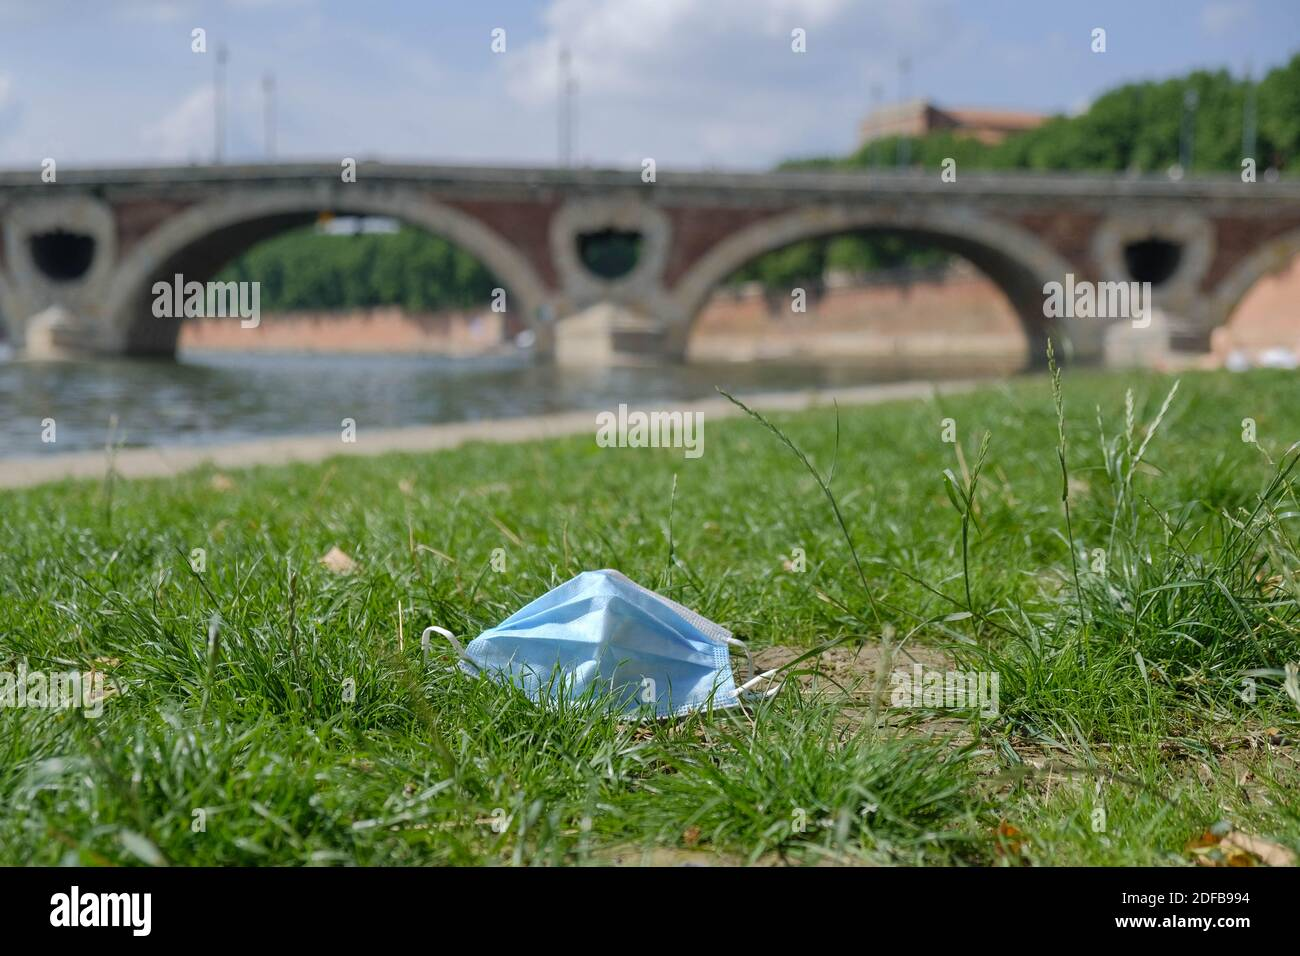 A protective face mask is seen discarded in the banks of the river Garonne in Toulouse, France, on June 27, 2020. As the use of masks and gloves sky-rocketed to protect the humanity from the coronavirus pandemic, their impact on environment also rose, with the worrying consumption of plastic and its disposal. Many fear the progress of eliminating single-use plastic is now being undone, as these protection tools are already being seen polluting the environment. Photo by Patrick Batard/ABACAPRESS.COM Stock Photo